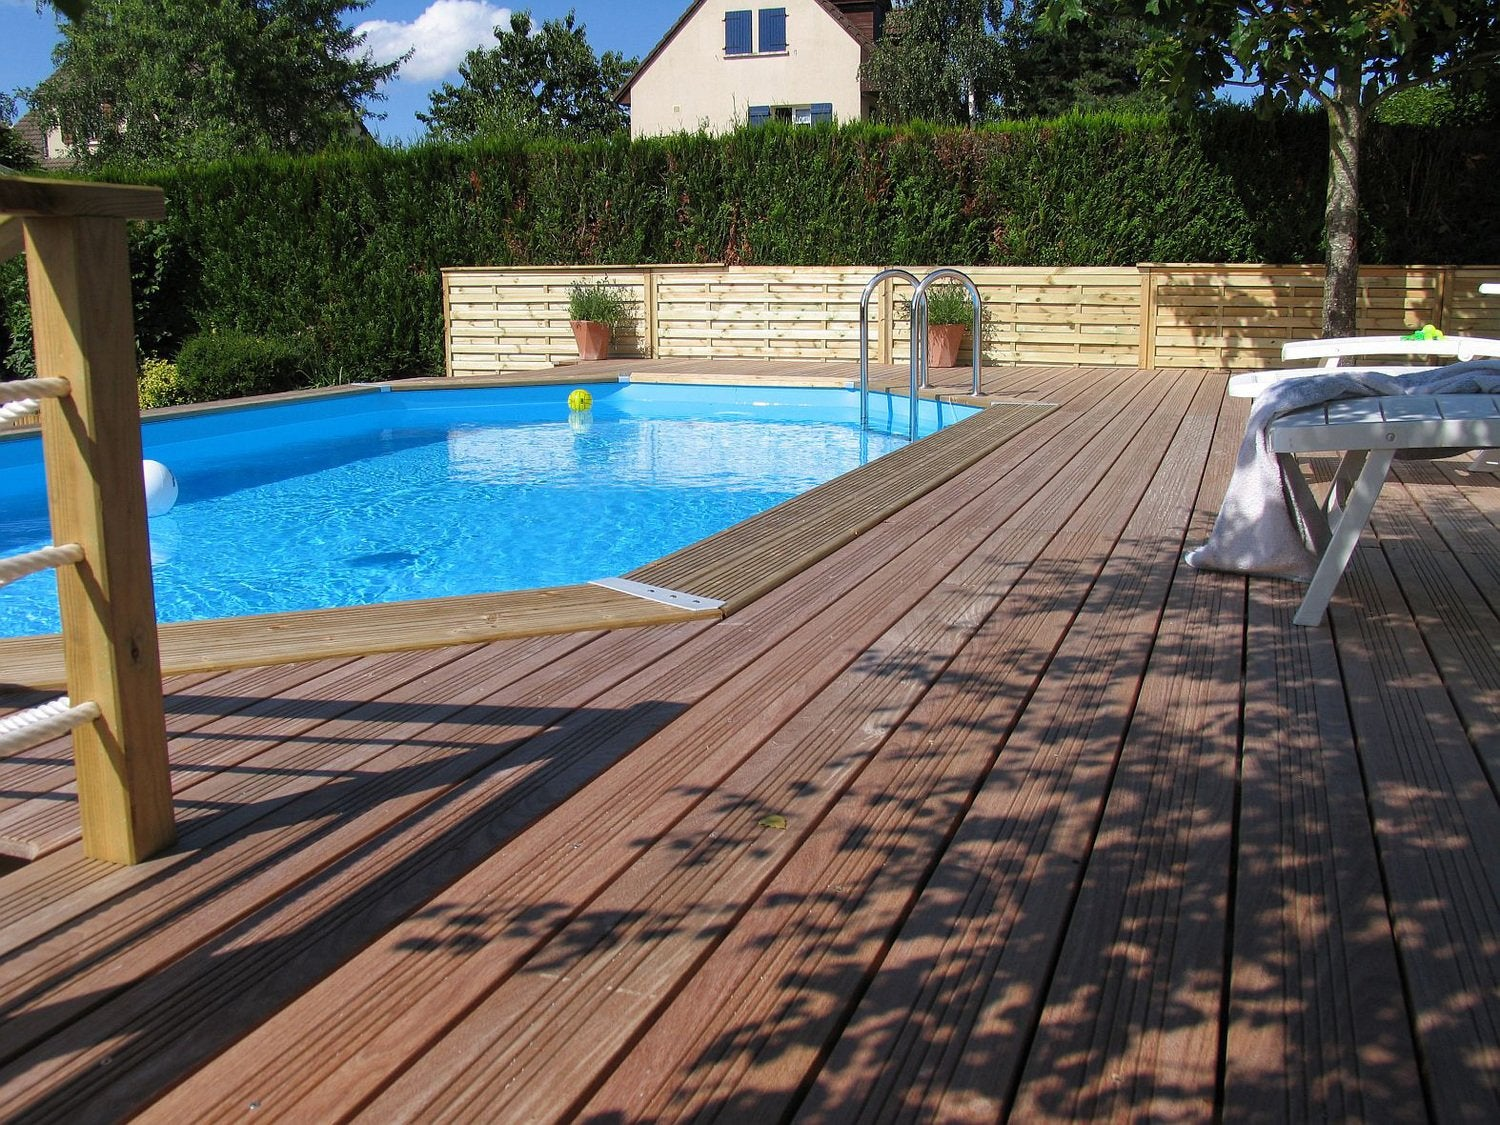 Piscine bois leroy merlin piscine enterr e leroy merlin for Piscine bois enterre